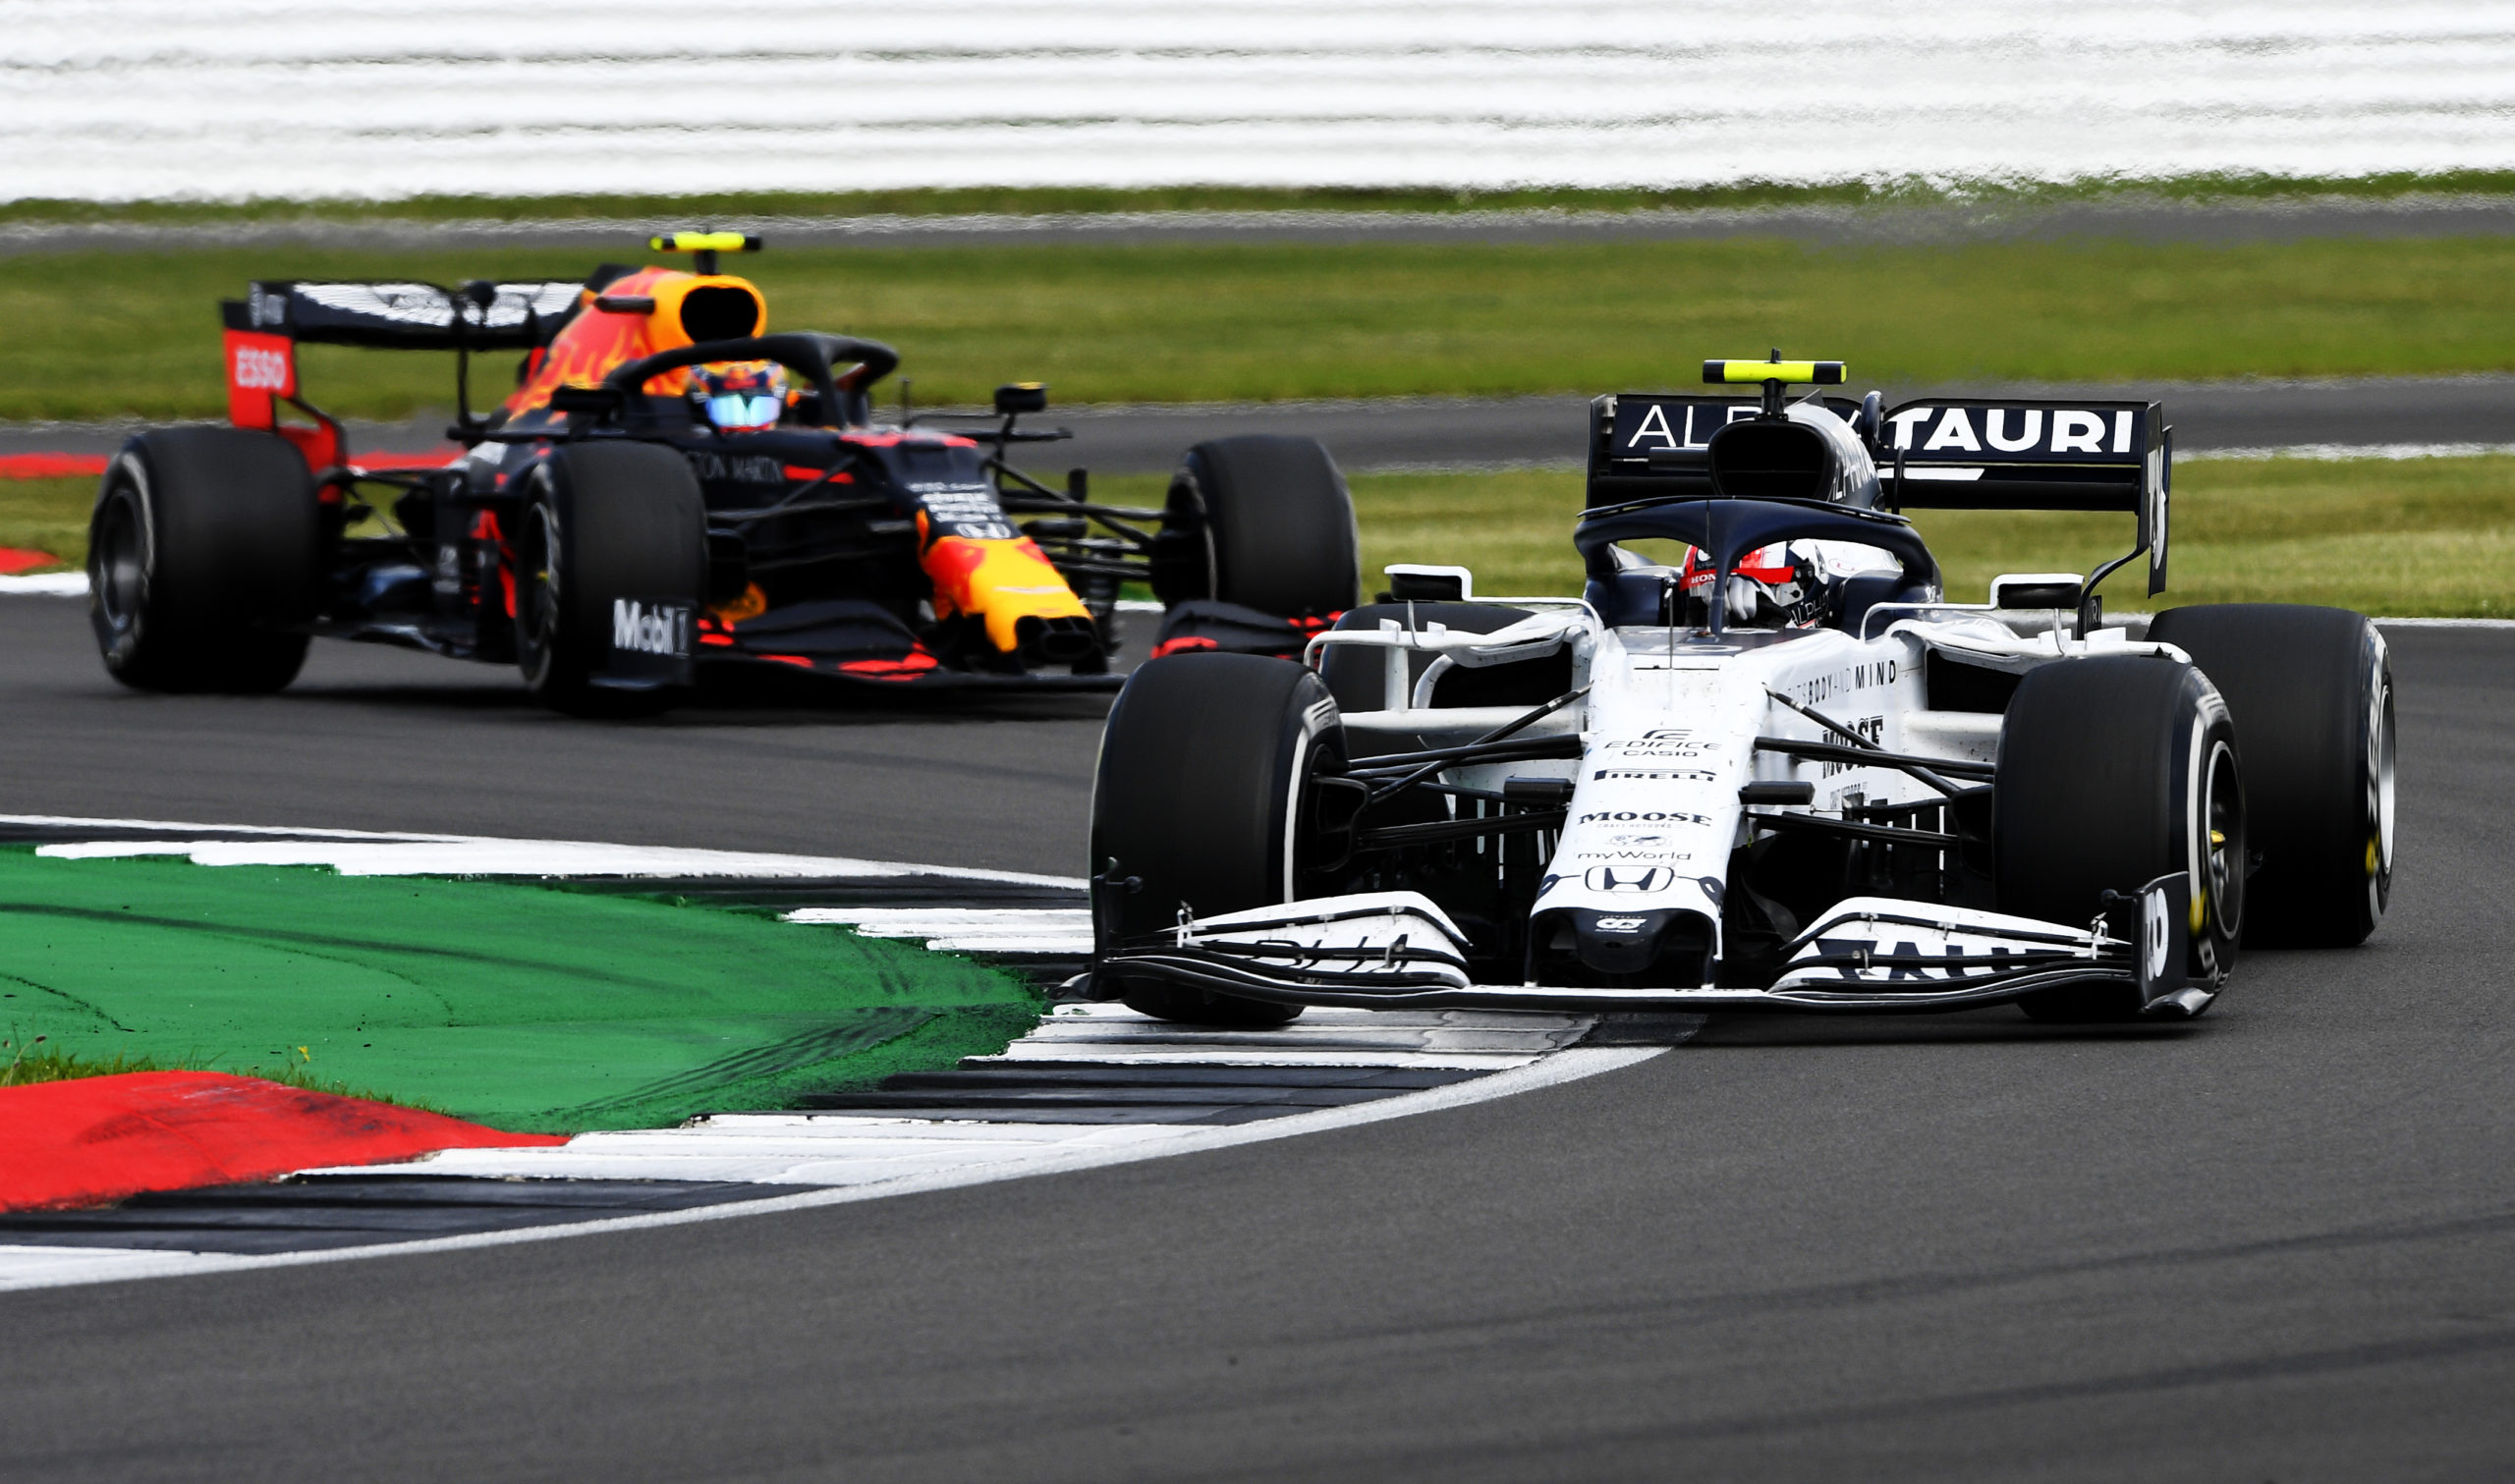 NORTHAMPTON, ENGLAND - AUGUST 02: Pierre Gasly of France driving the (10) Scuderia AlphaTauri AT01 Honda leads Alexander Albon of Thailand driving the (23) Aston Martin Red Bull Racing RB16 on track during the F1 Grand Prix of Great Britain at Silverstone on August 02, 2020 in Northampton, England. (Photo by Rudy Carezzevoli/Getty Images) // Getty Images / Red Bull Content Pool  // AP-24TQ5F39D1W11 // Usage for editorial use only //